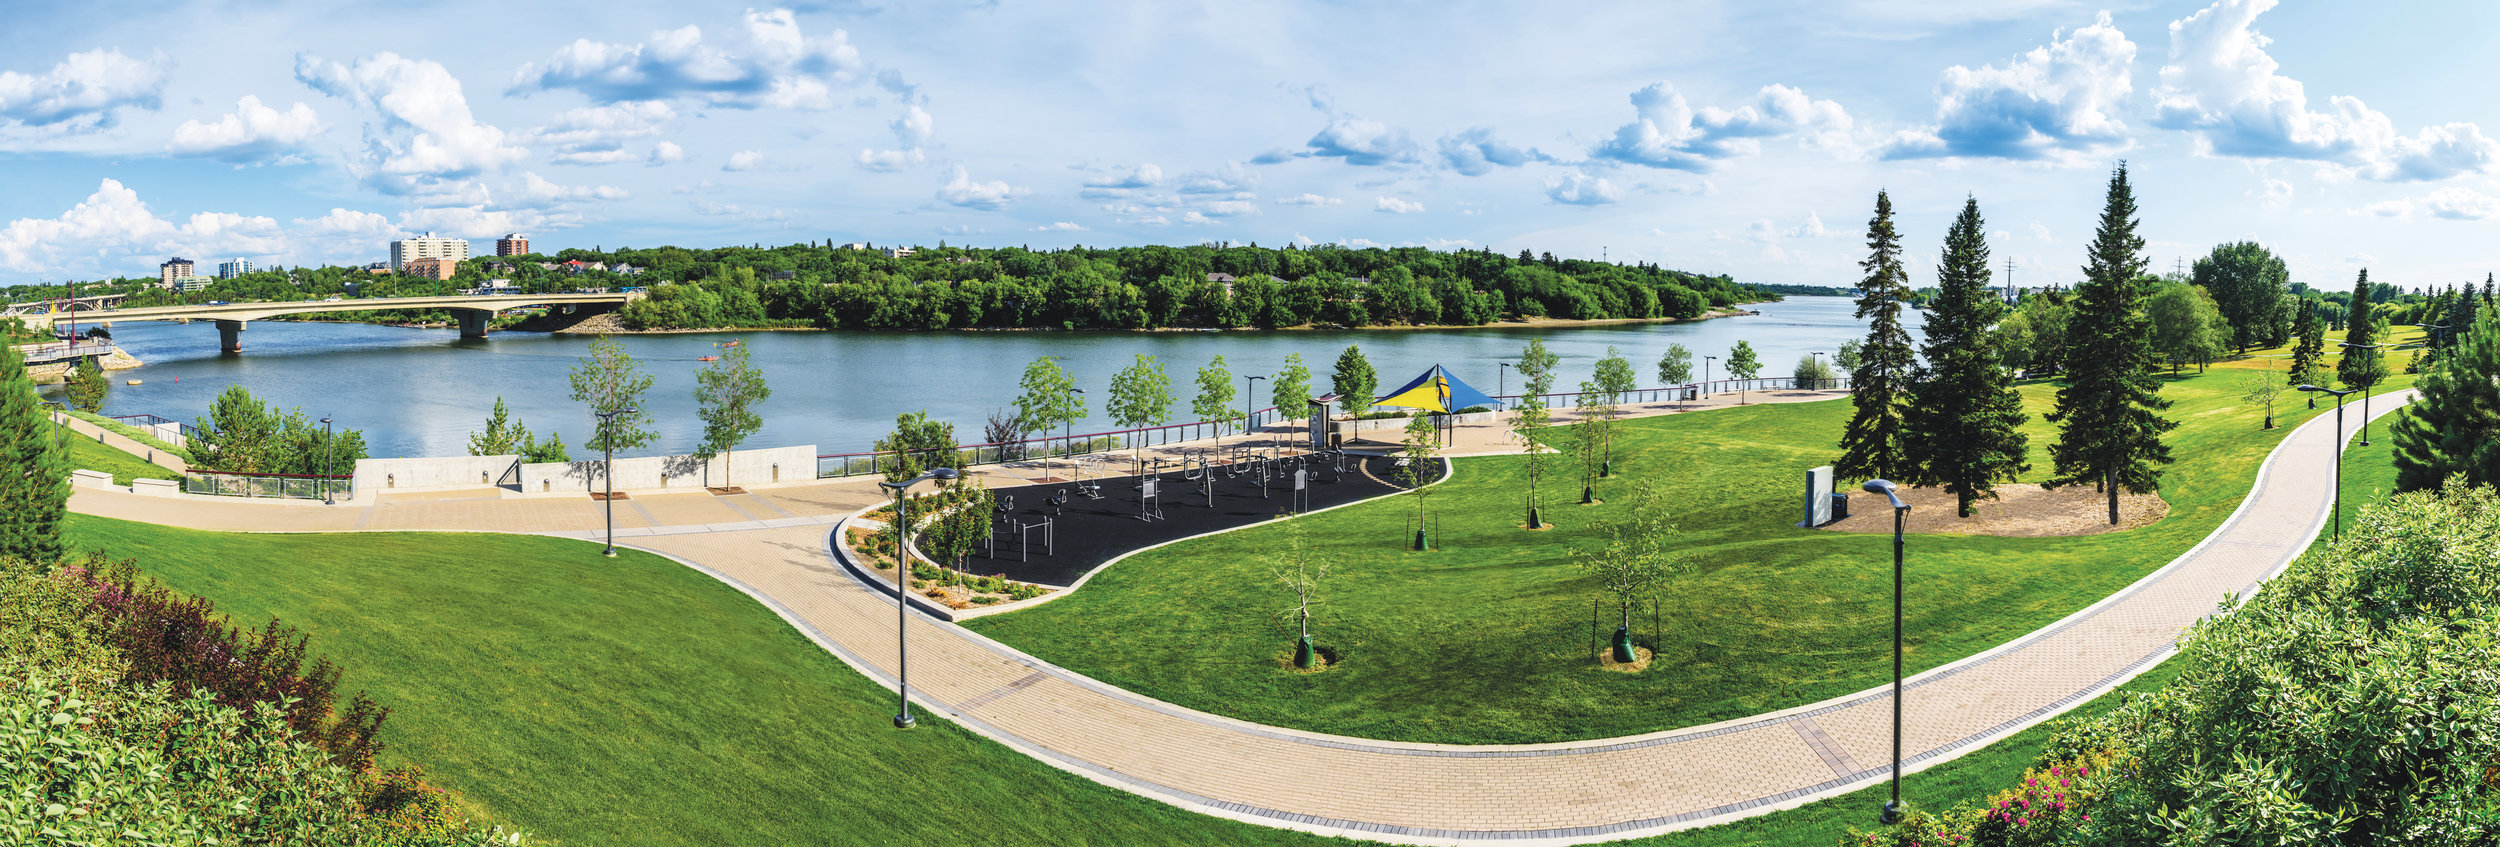 Victoria Park, The South Saskatchewan River and the MVA Trails are the connective tissue of this neighbourhood. No matter where you end up living in it, you have immediate access to this ecosystem, one that naturally leads you to the best amenities of Riversdale and Downtown.